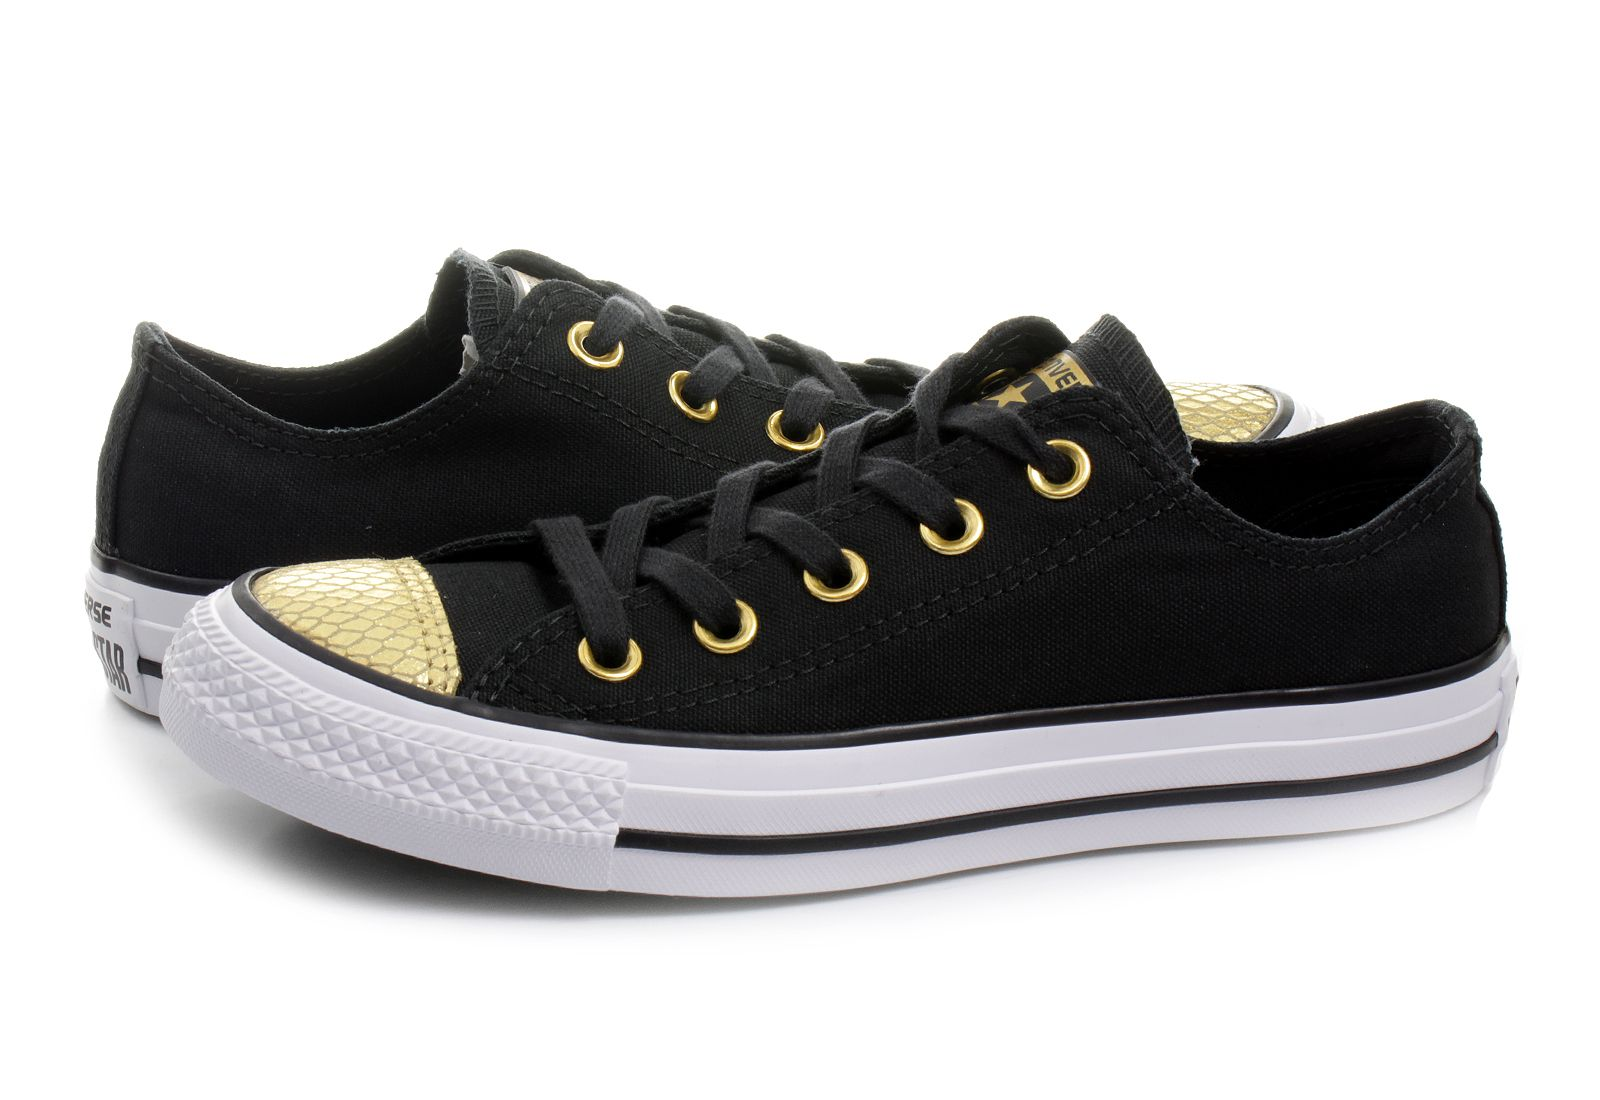 Converse Sneakers - Chuck Taylor All Star Specialty Ox - 555815C ... ca336e2abb79